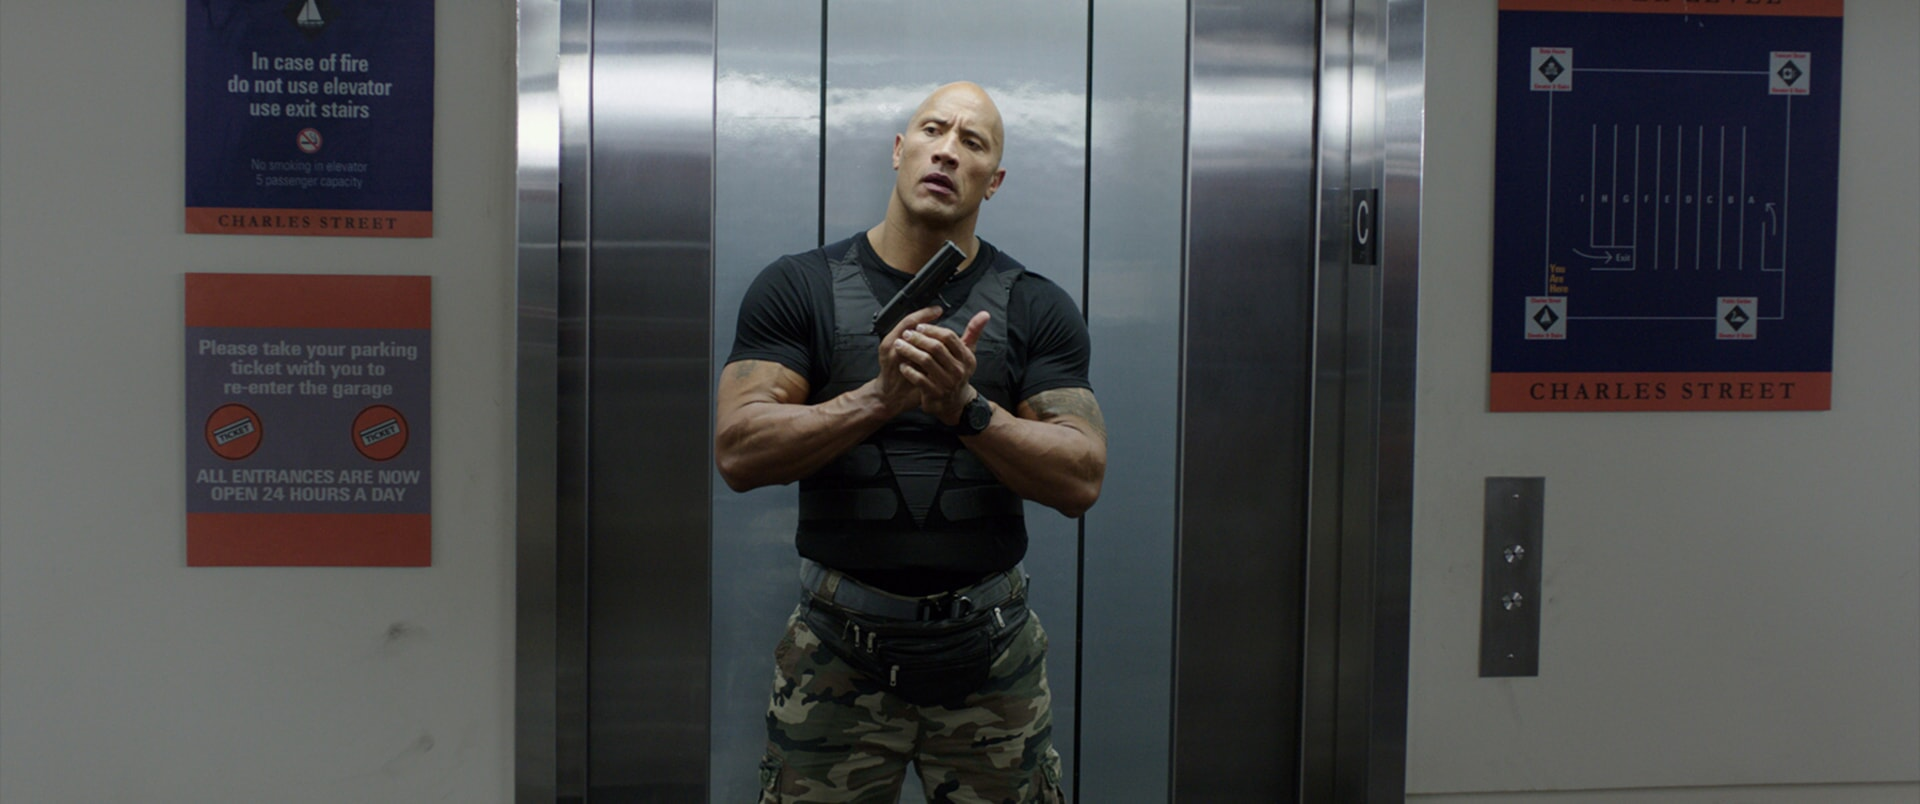 DWAYNE JOHNSON as Bob holding a gun in an elevator